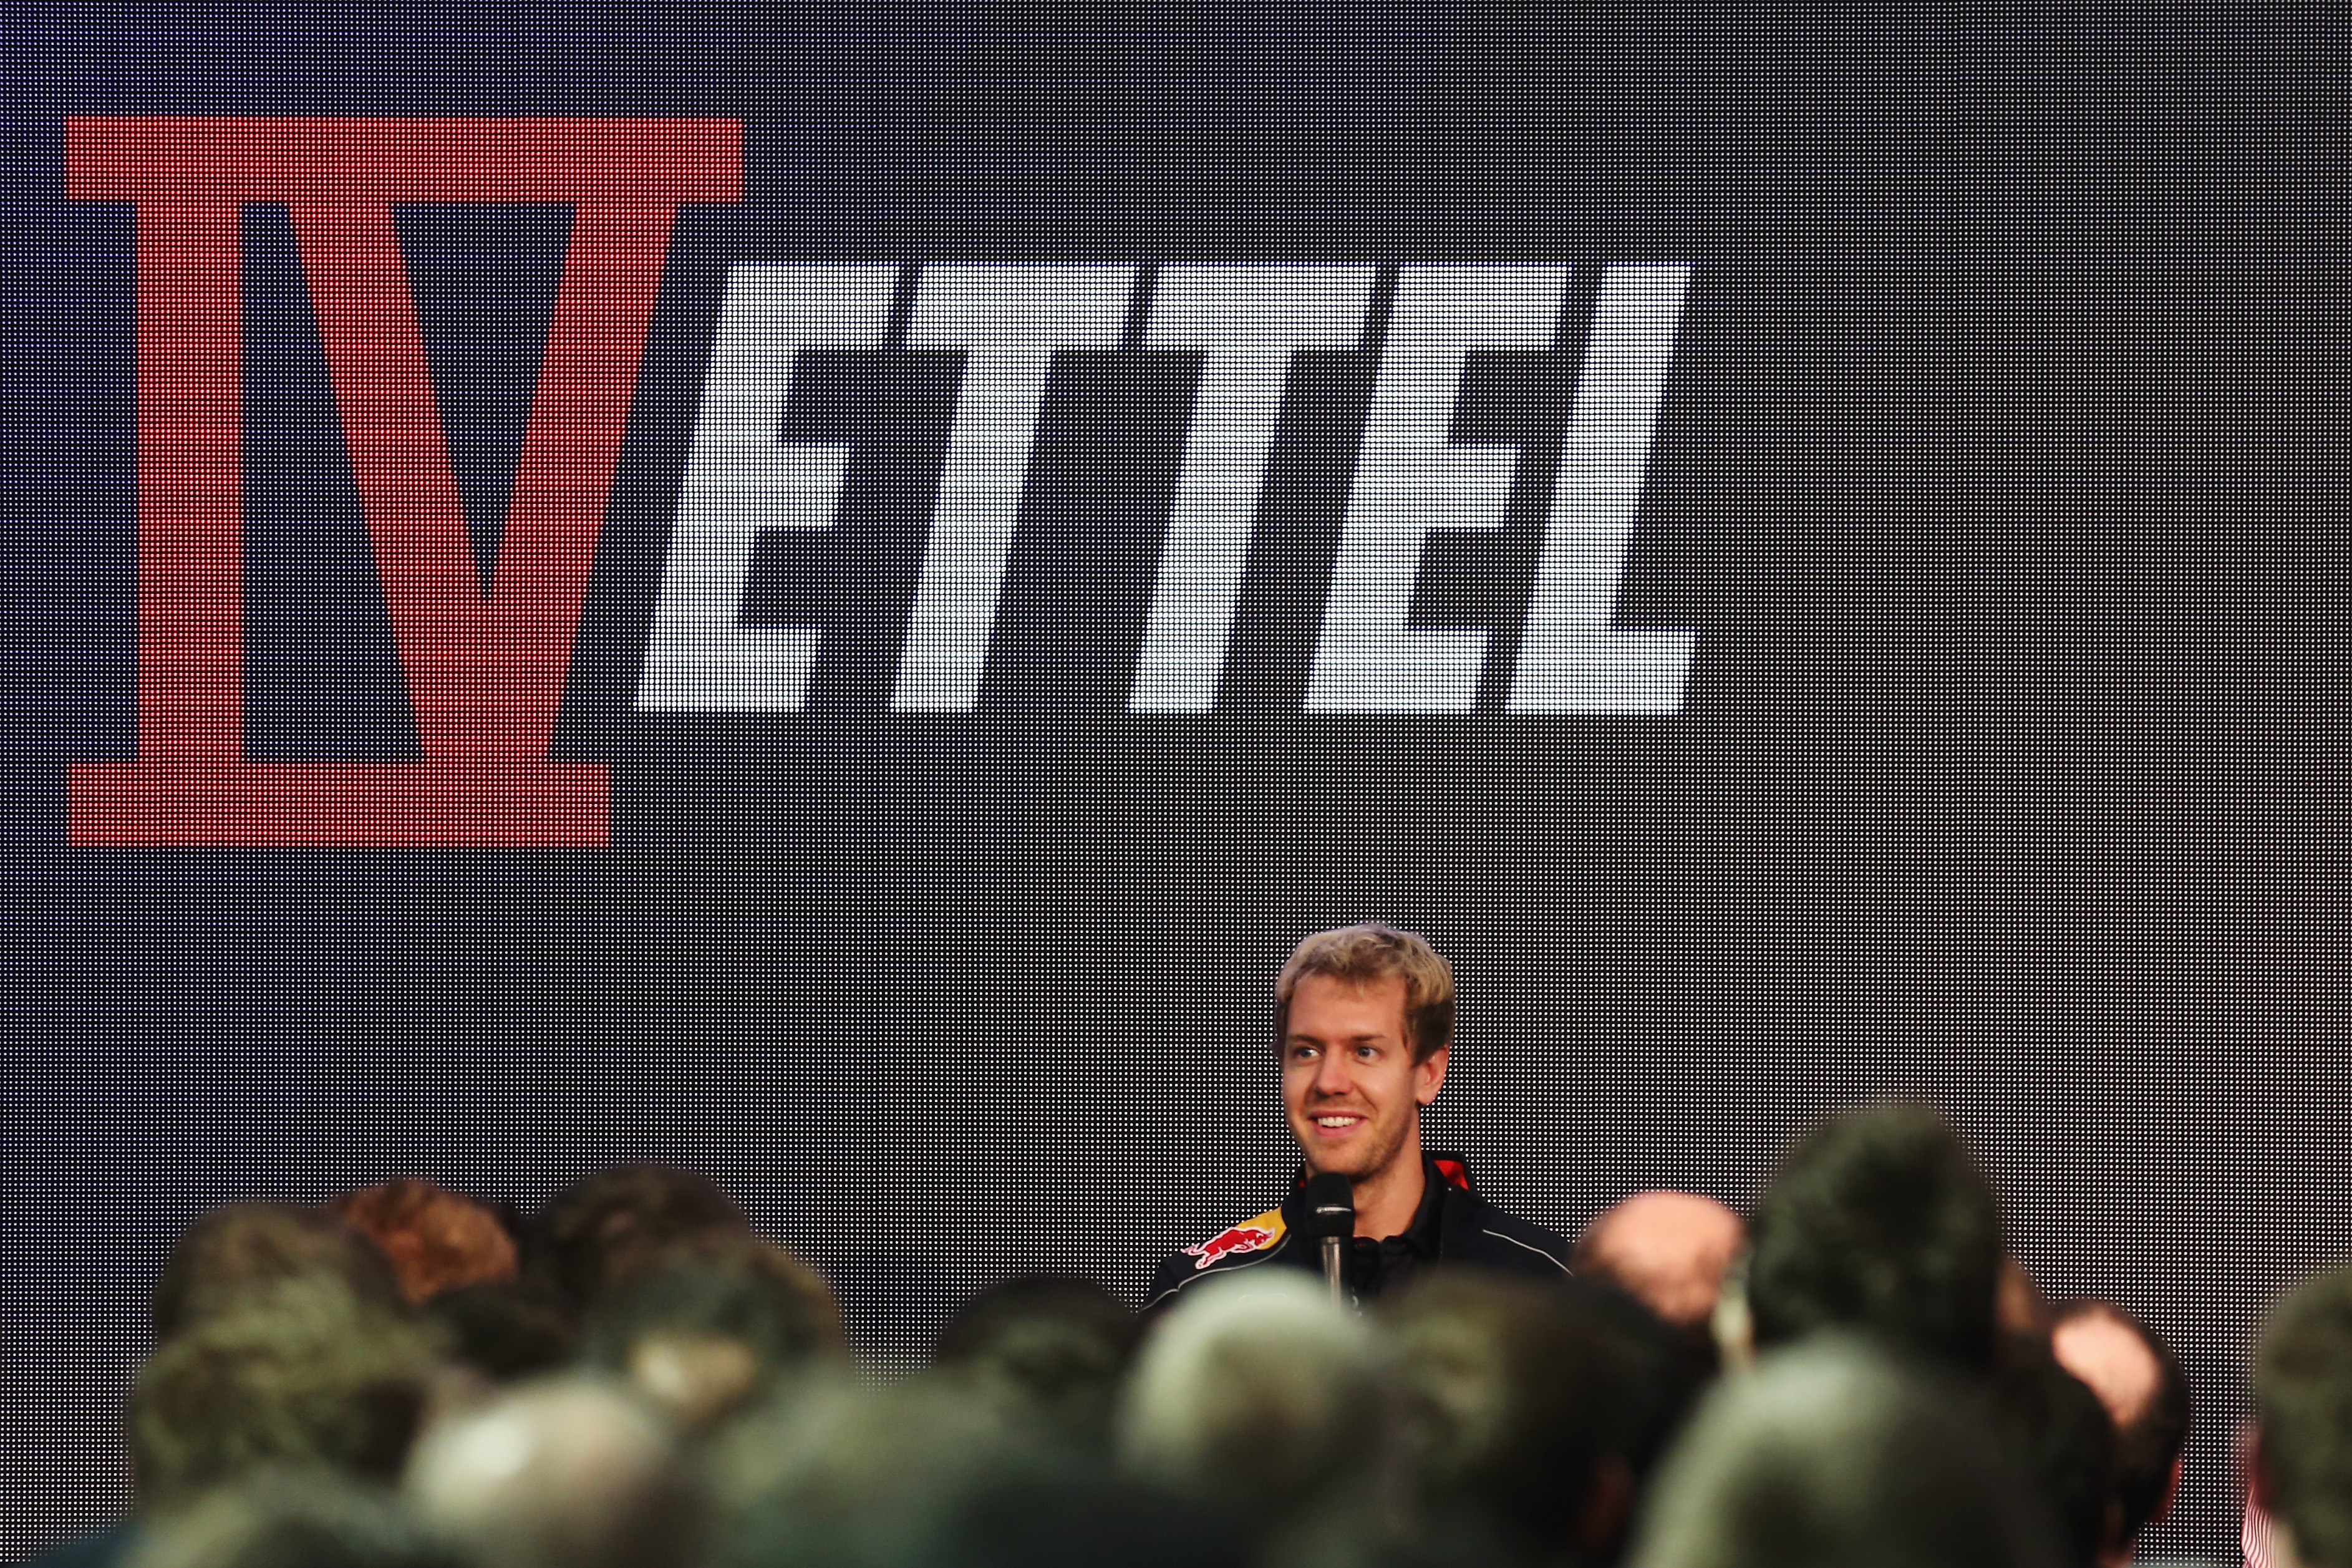 at the Infiniti Red Bull Racing World Championship Press Conference on November 6, 2013 in Milton Keynes, England.